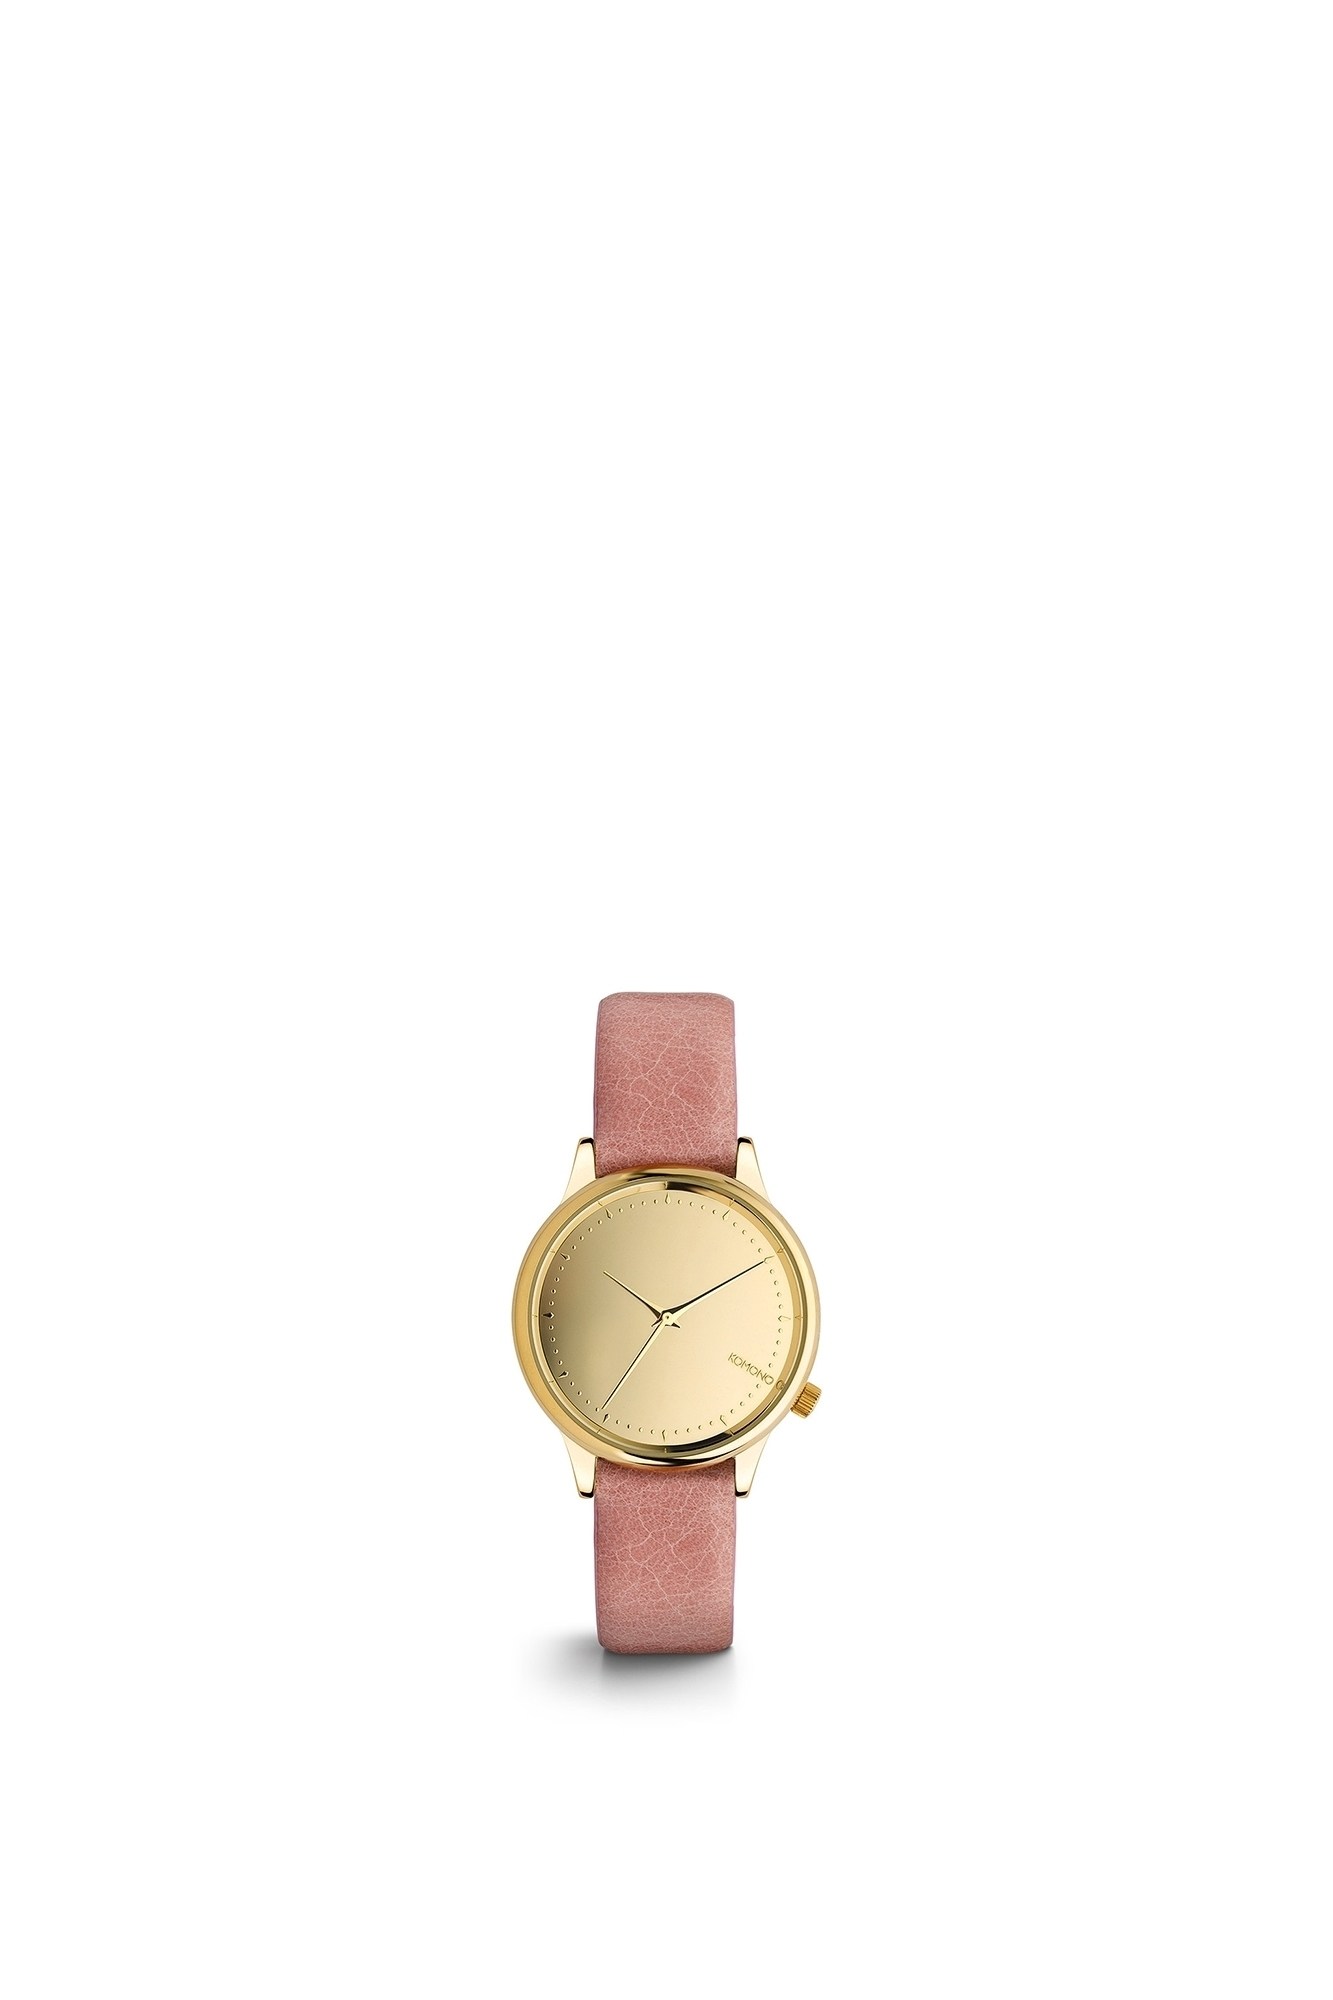 Komono - Orologio Estelle mirror gold blush